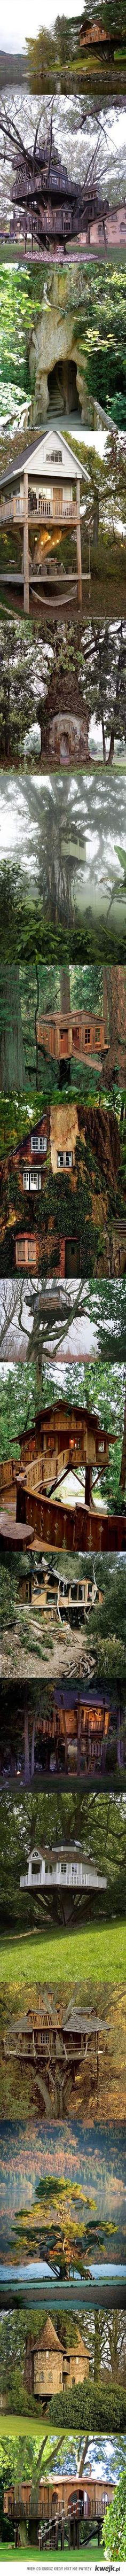 Just to clarify: My dream home isn't a tree house; my dream home would HAVE an awesome treehouse in the backyard. Beautiful Homes, Beautiful Places, Cool Tree Houses, Exterior, In The Tree, Big Tree, Play Houses, Cabana, The Great Outdoors